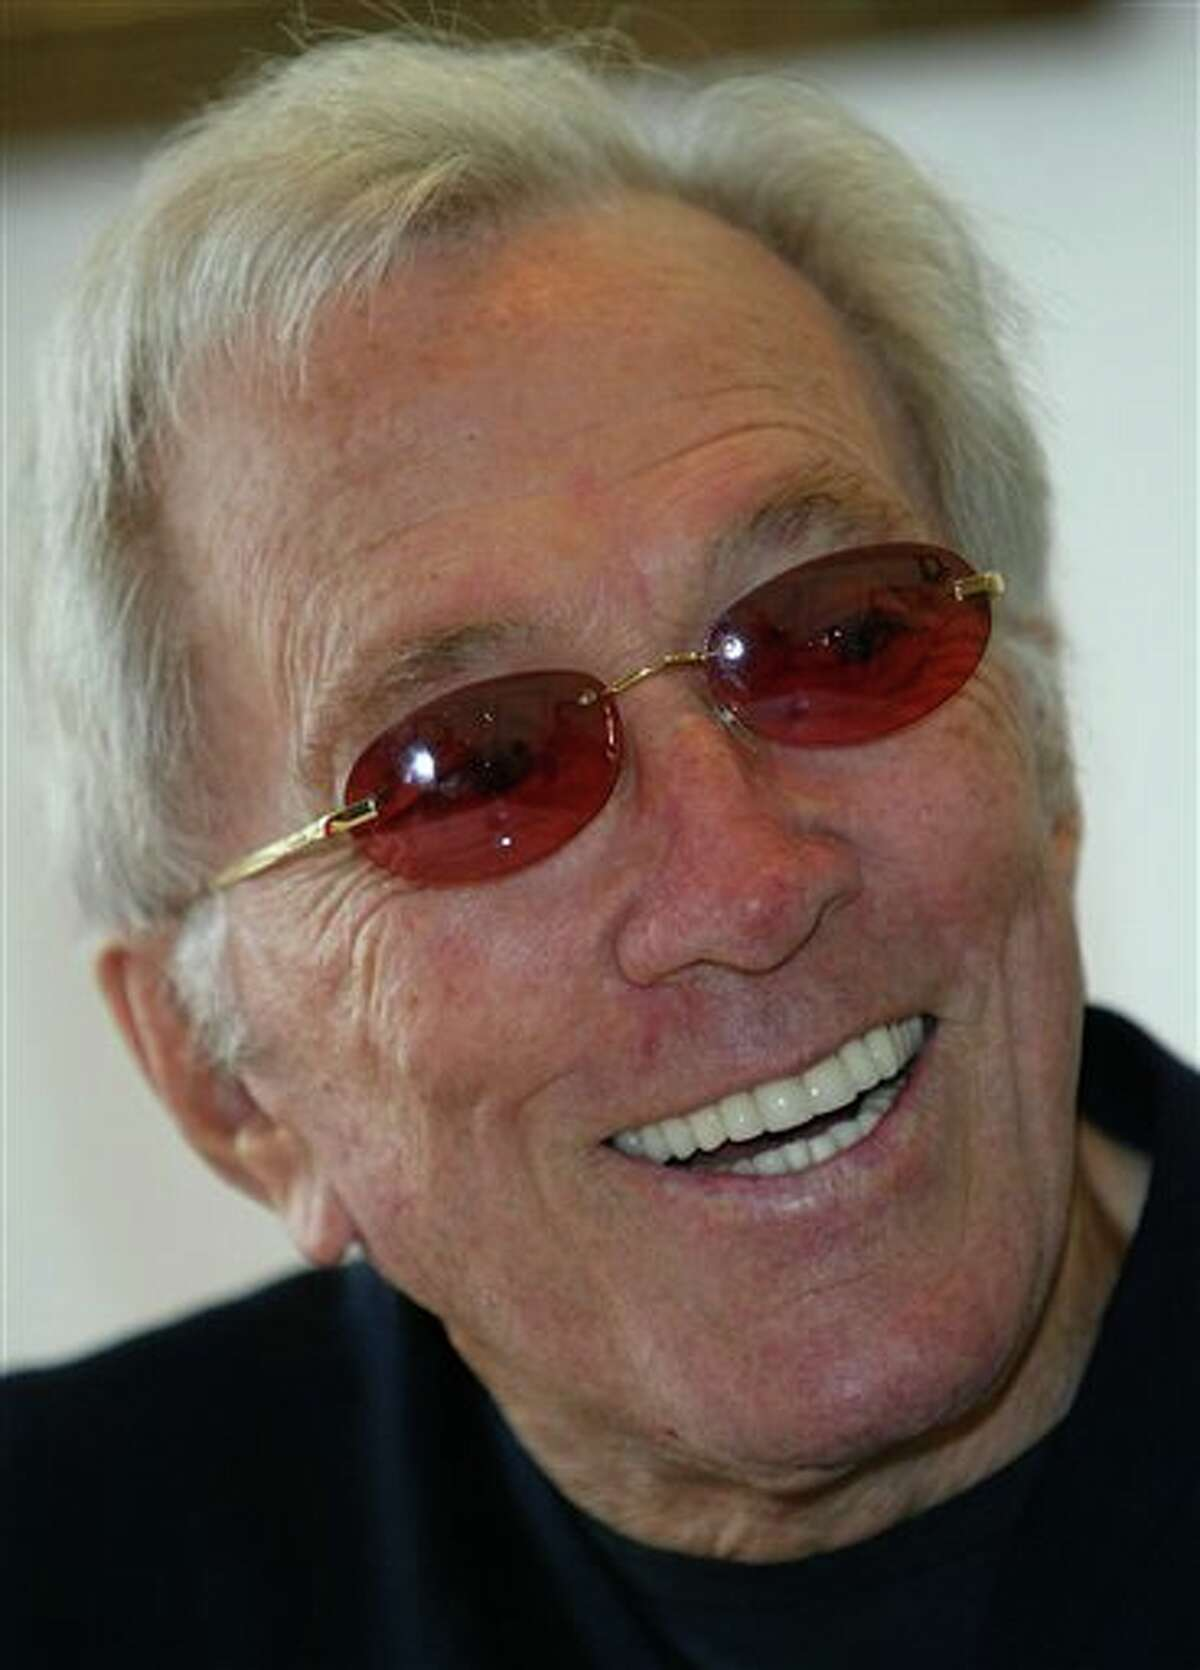 """FILE - In this July 25, 2004 file photo, U.S. singer Andy Williams smiles as he speaks to reporters during his news conference at a Tokyo hotel. Emmy-winning TV host and """"Moon River"""" crooner Williams died Tuesday night, Sept, 25, 2012 at his home in Branson, Mo., following a year-long battle with bladder cancer. He was 84. (AP Photo/Shizuo Kambayashi, File)"""